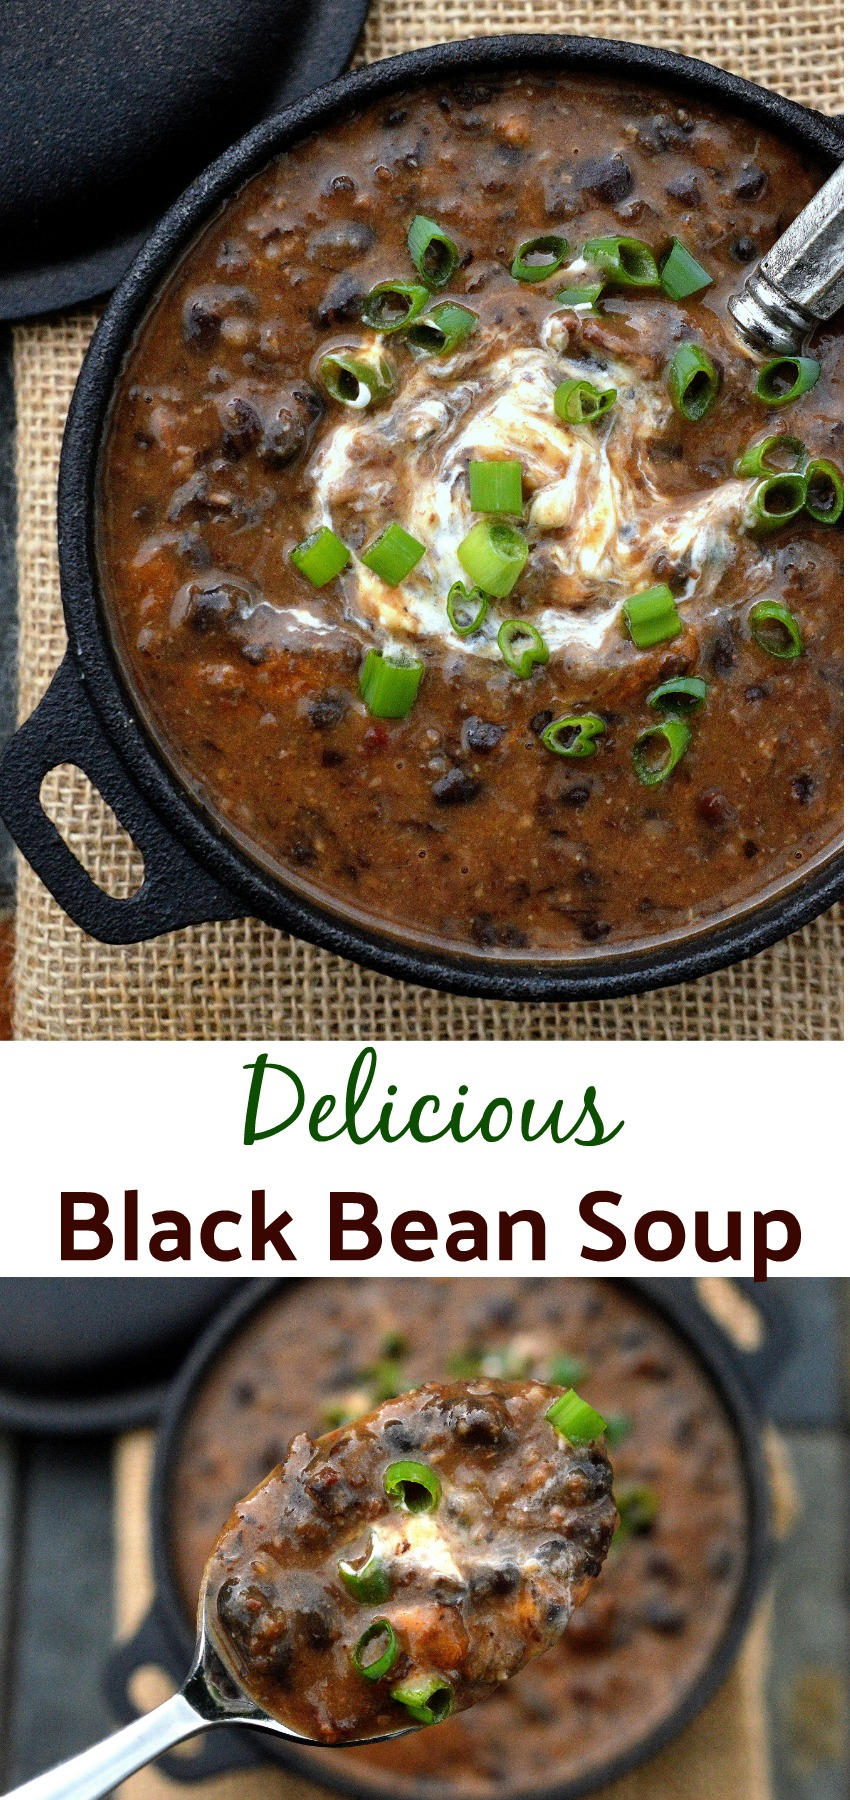 Delicious Black Bean Soup Recipe - Bacon gives this soup a great flavor!